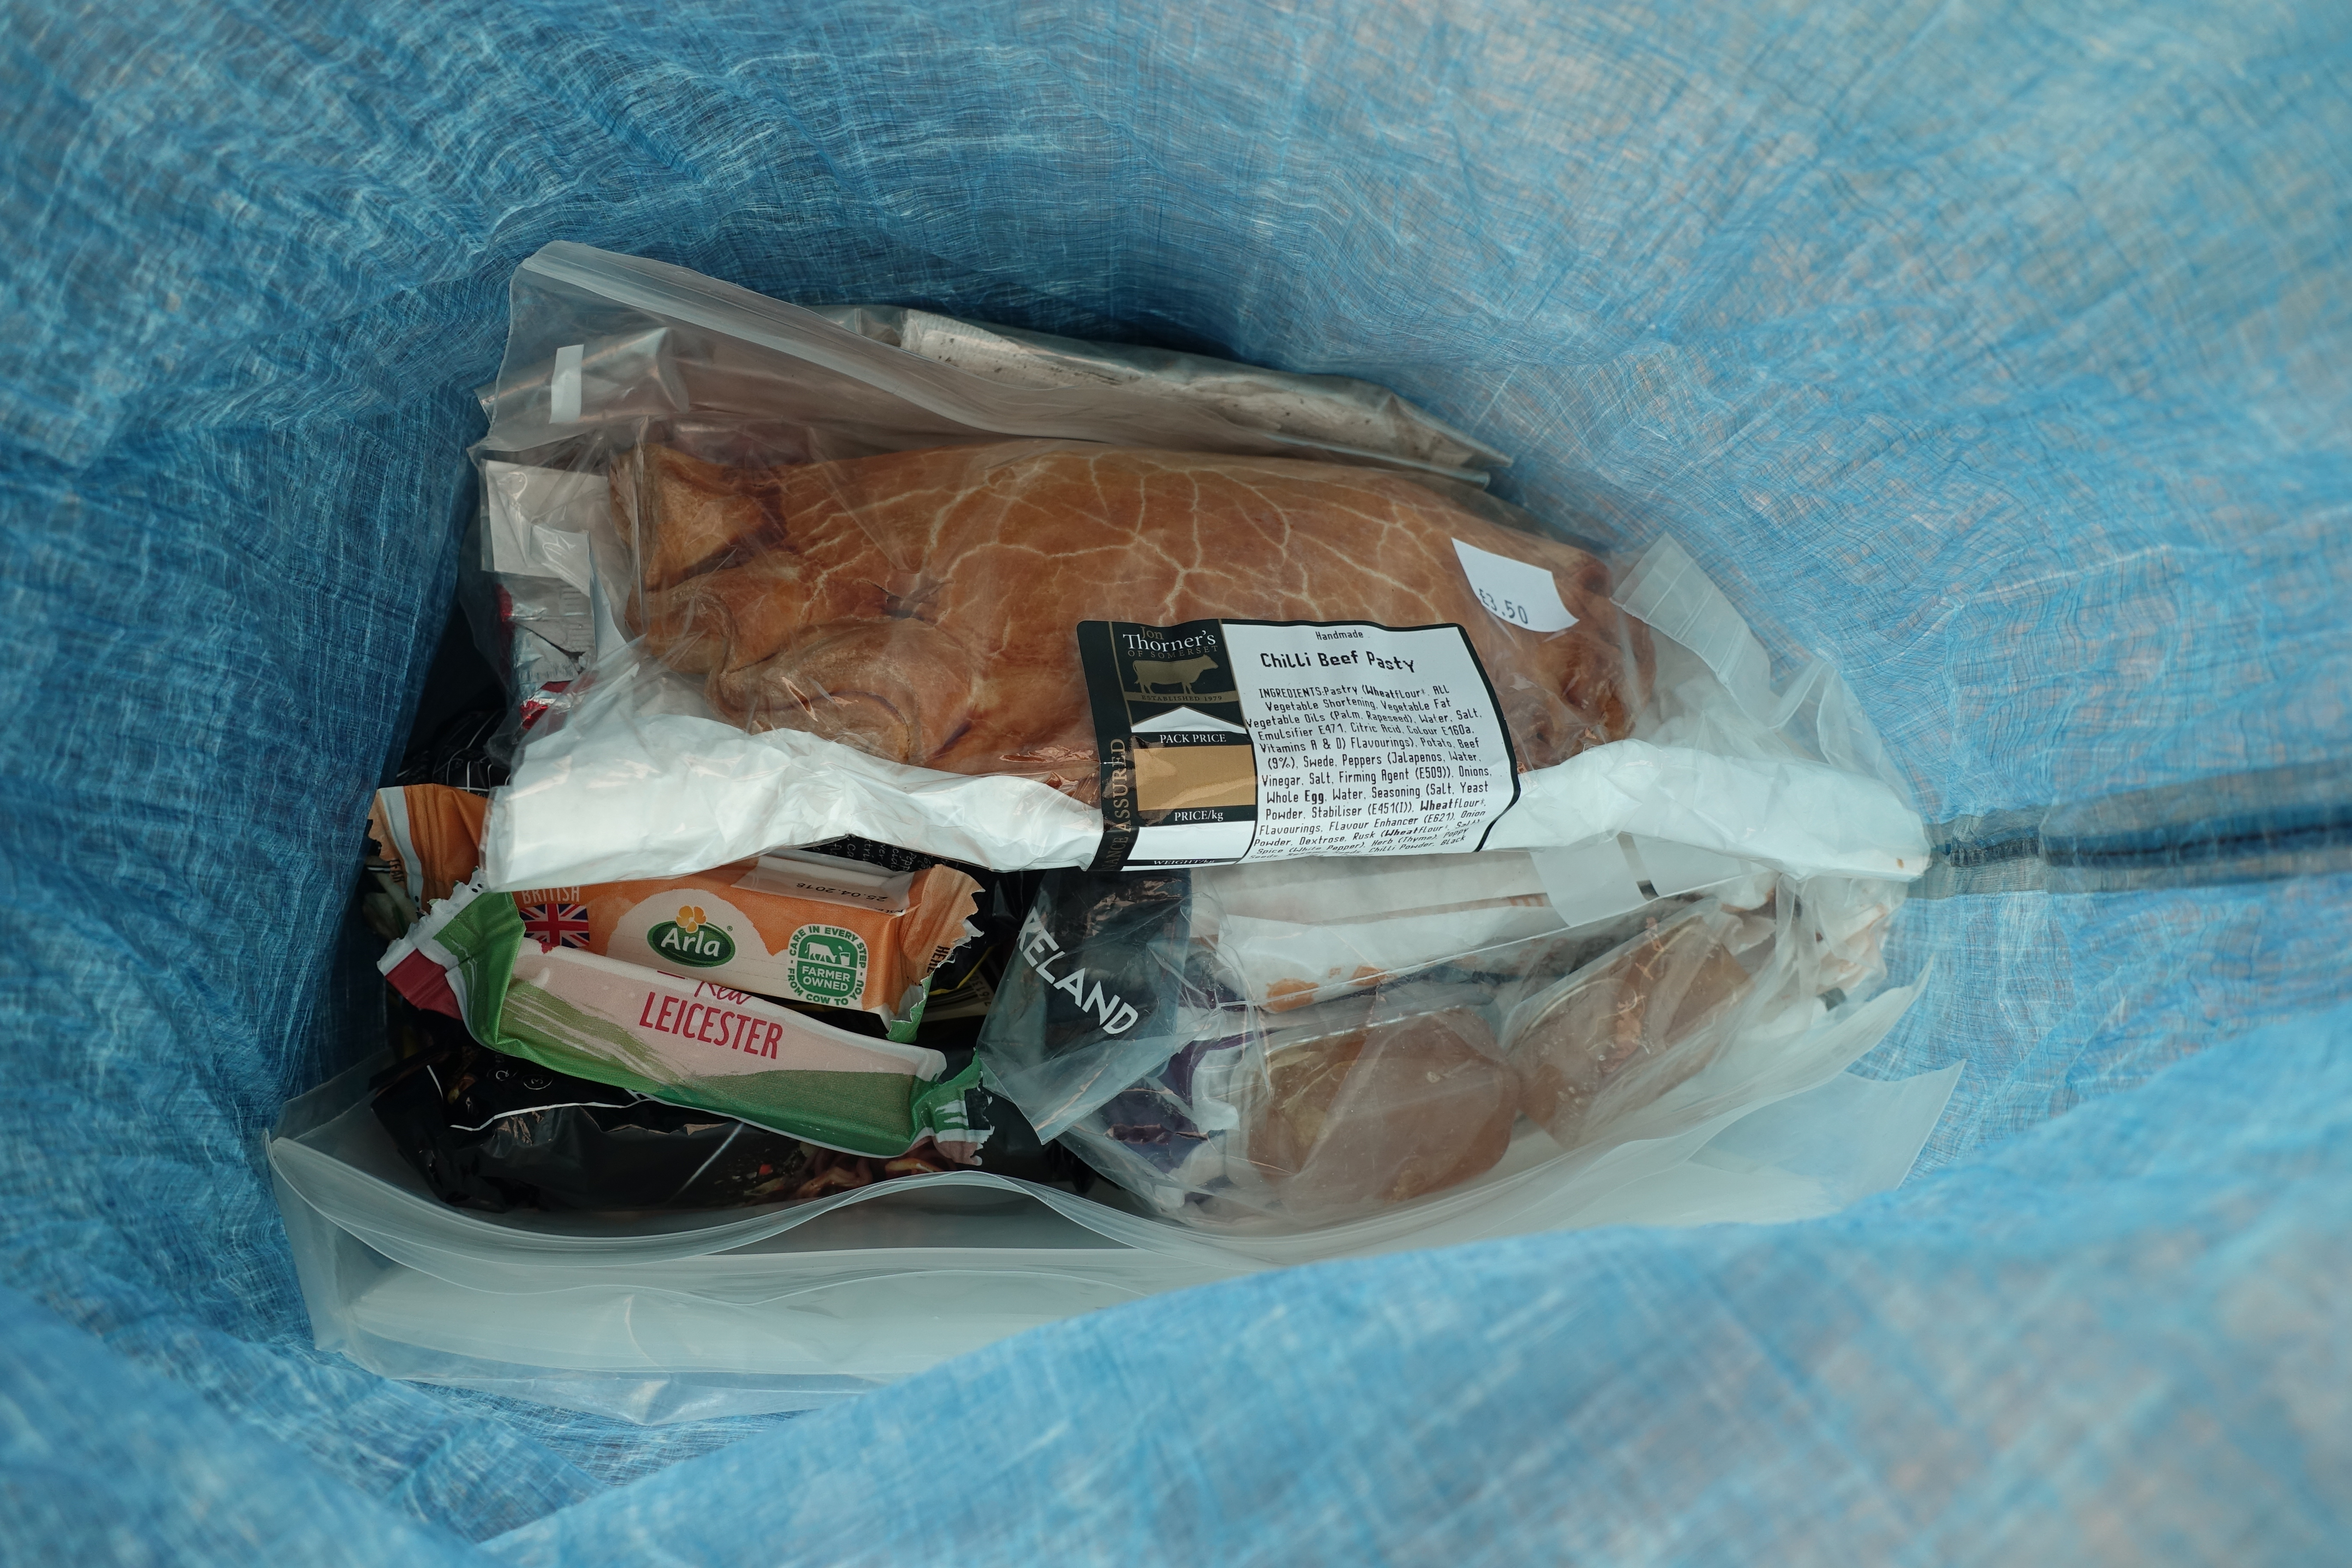 With just a couple of days beween larger towns on trail there is little in my food bag beside heavy tasty foods- Chilli beef pasty, pork pies and cheeses. Some moderately heathier foods are beneath, honest!